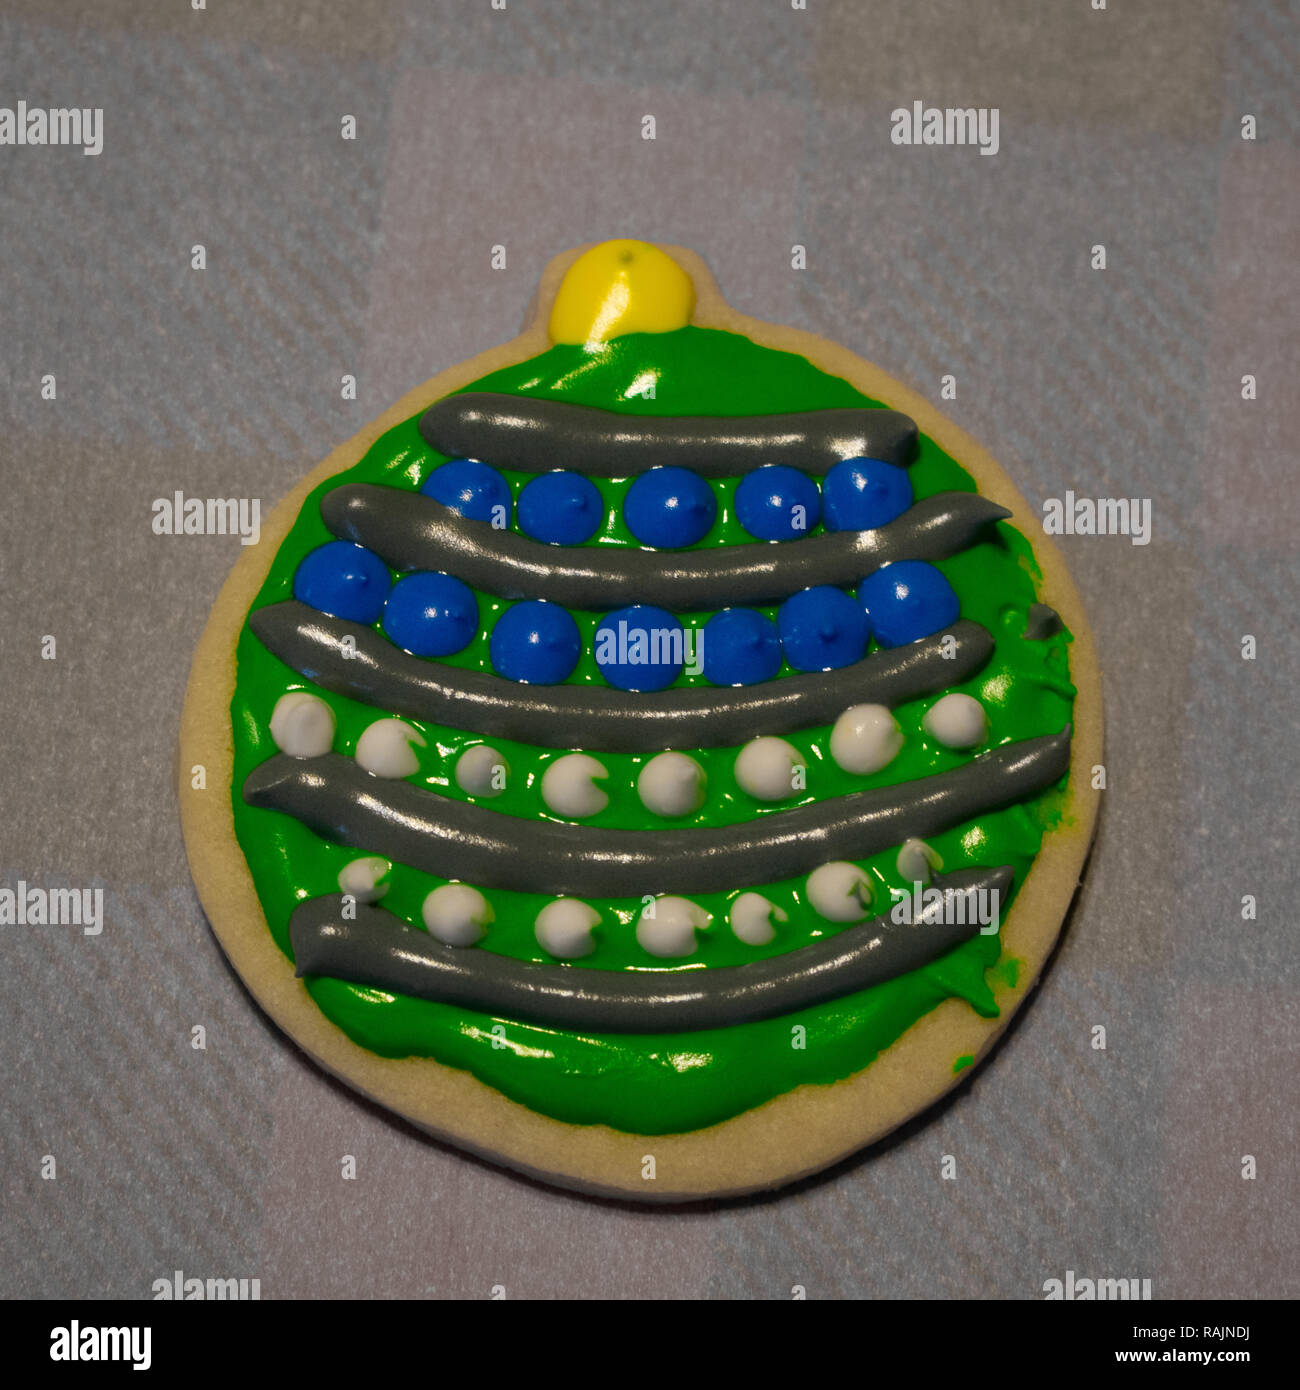 Festive Blue Green White Decorated Christmas Bulb Cookies Stock